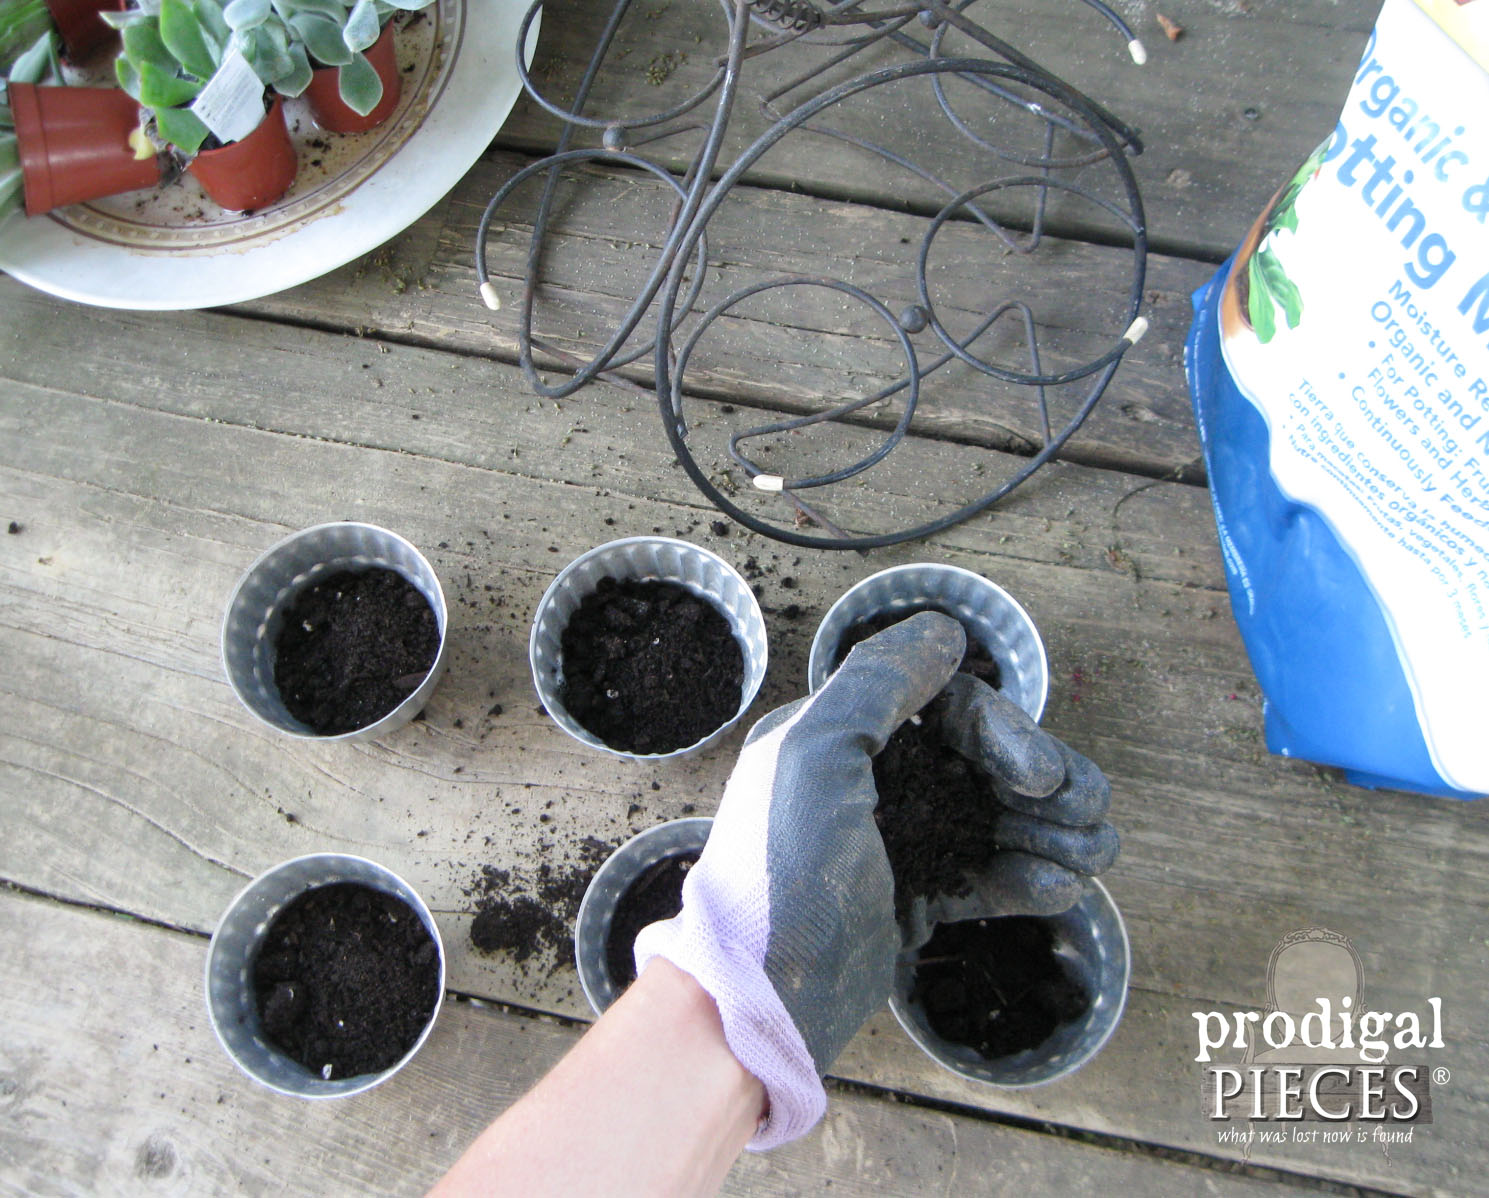 Filling Repurposed Jelly Molds with Succulents and Soil | Prodigal Pieces | www.prodigalpieces.com